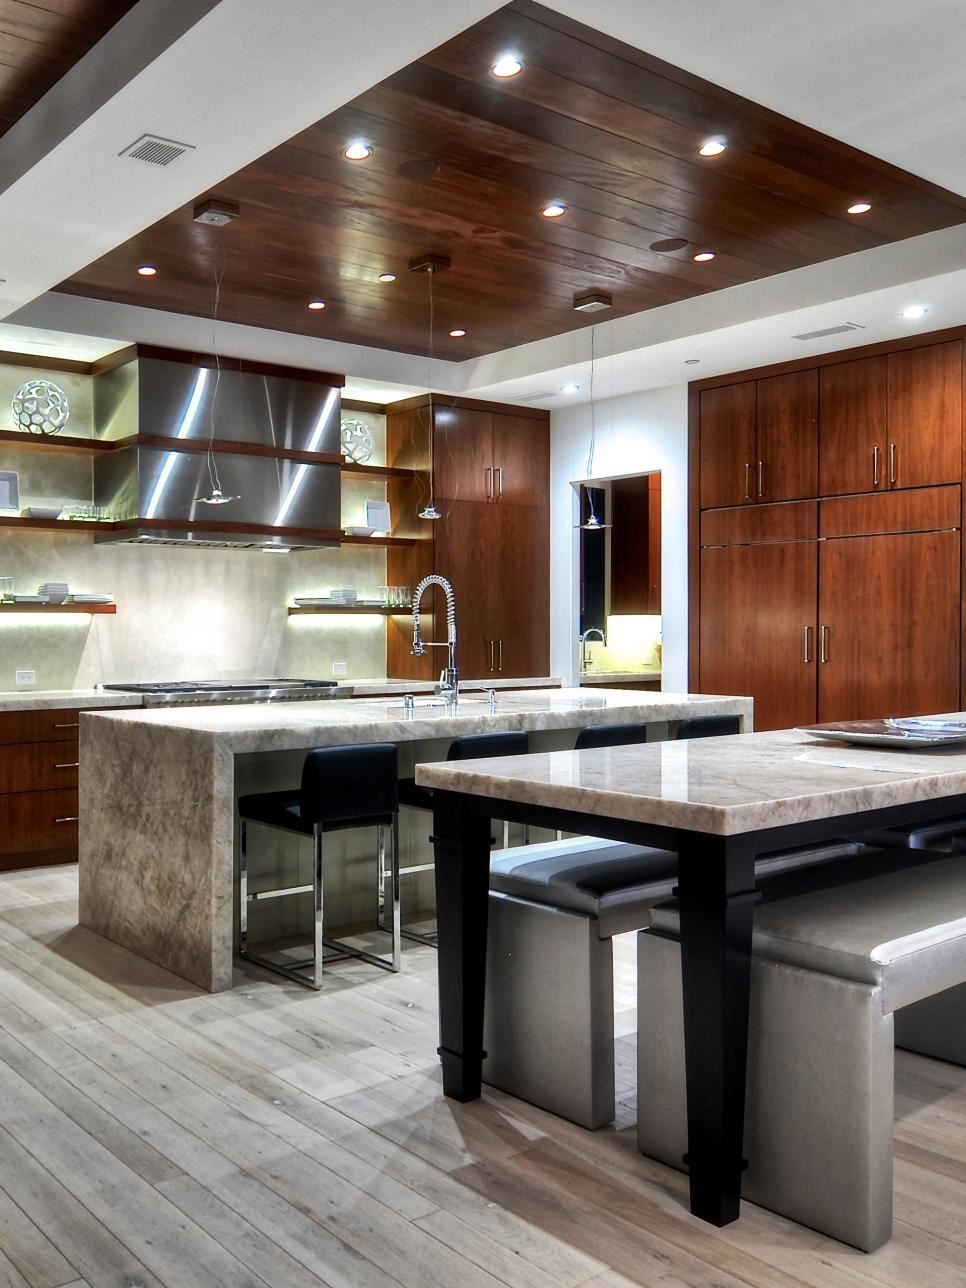 Design Ideas For A Recessed Ceiling Spacious Kitchens Ceiling